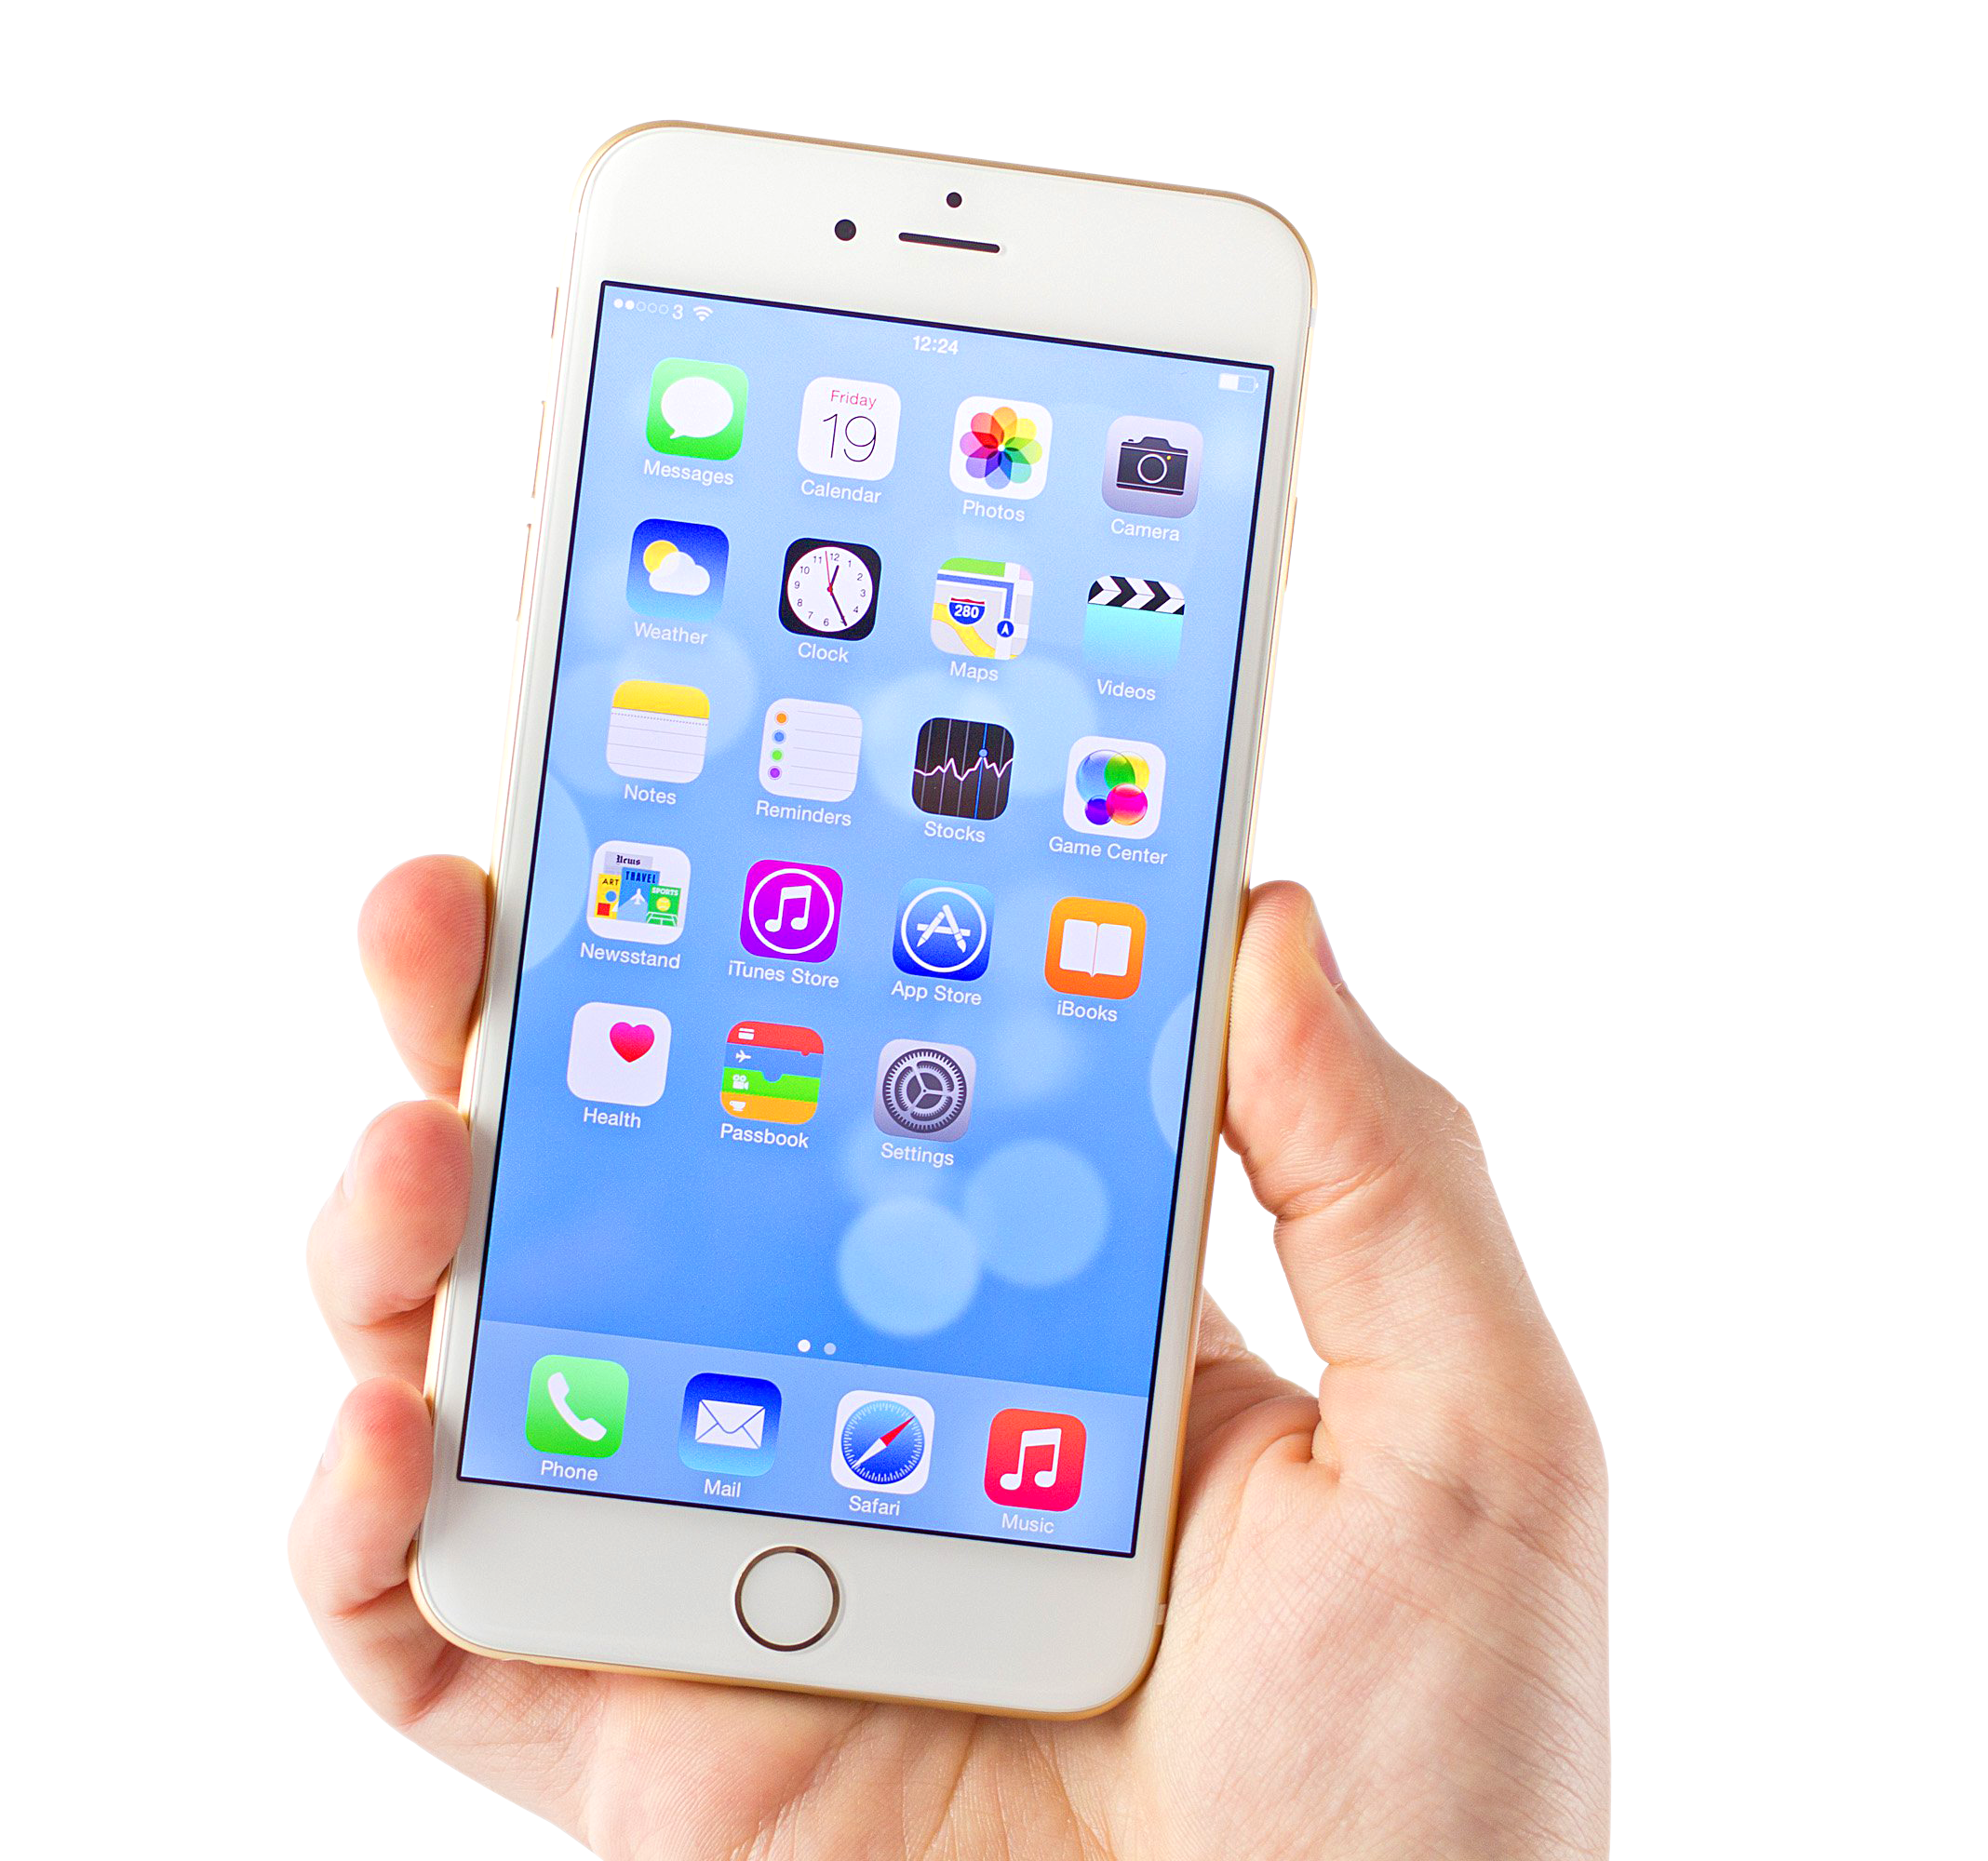 Iphone 6 png. White apple image purepng